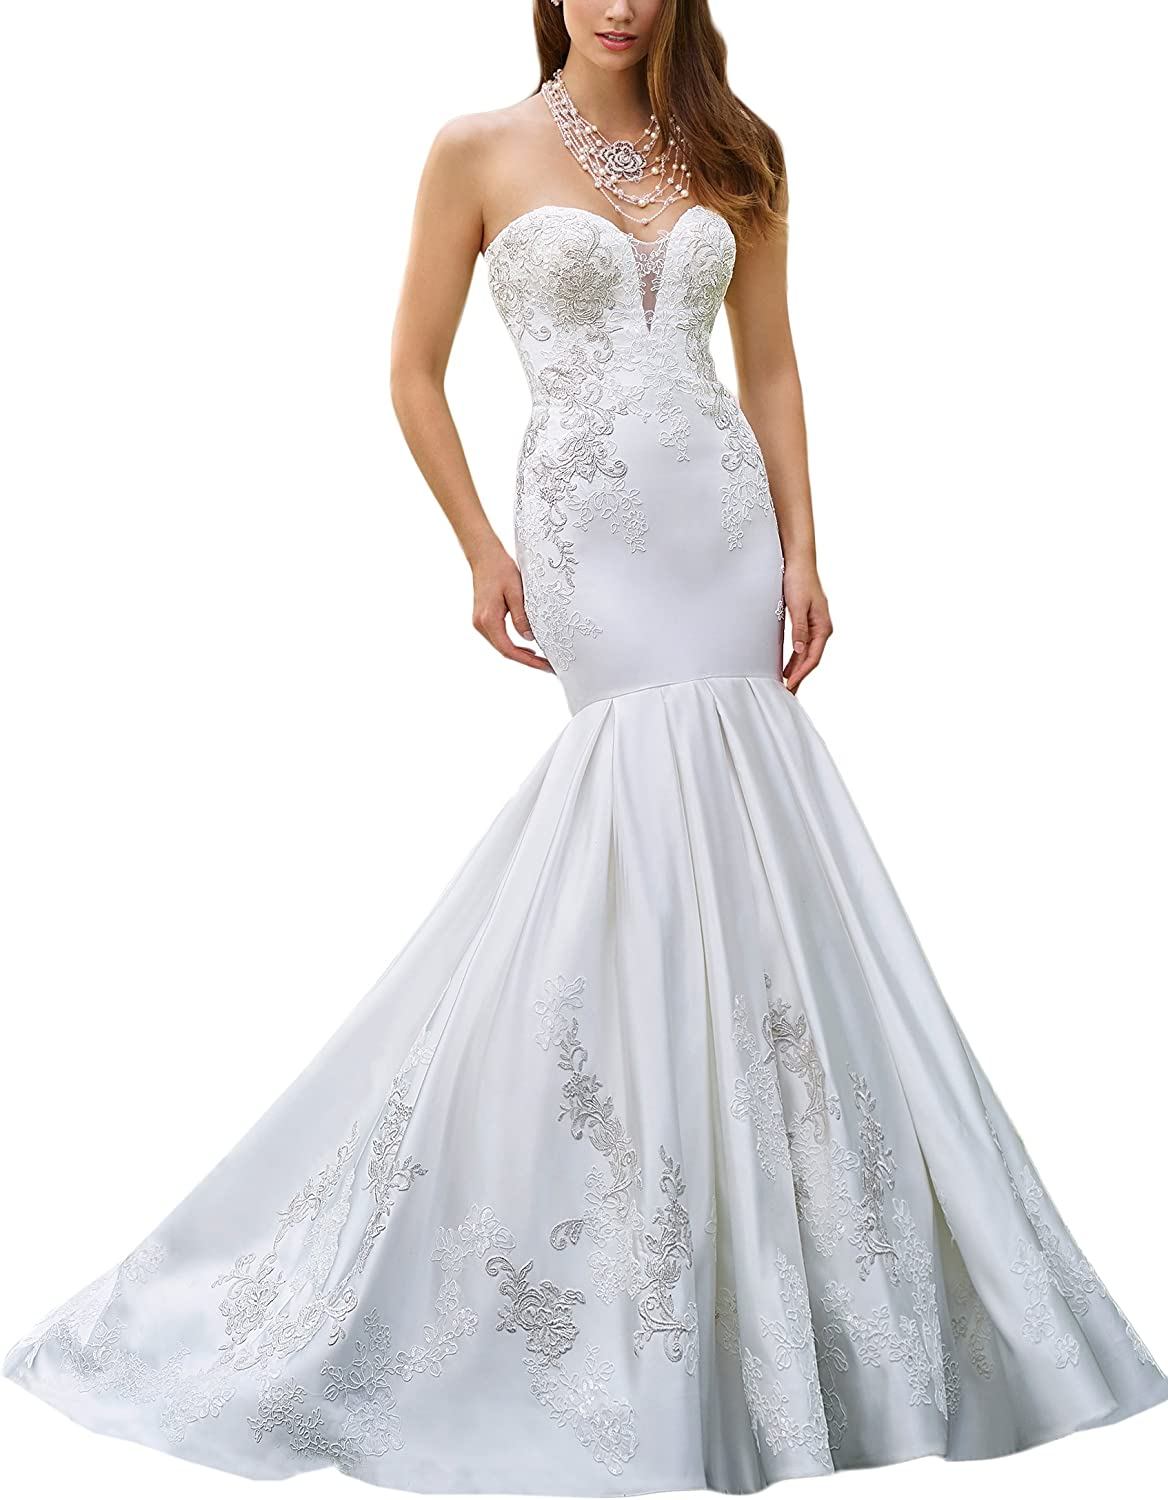 Doramei Women's Sheath Satin Lace Appliques Backless Sweetheart Empire Wedding Dress for Bride Bridal Gowns